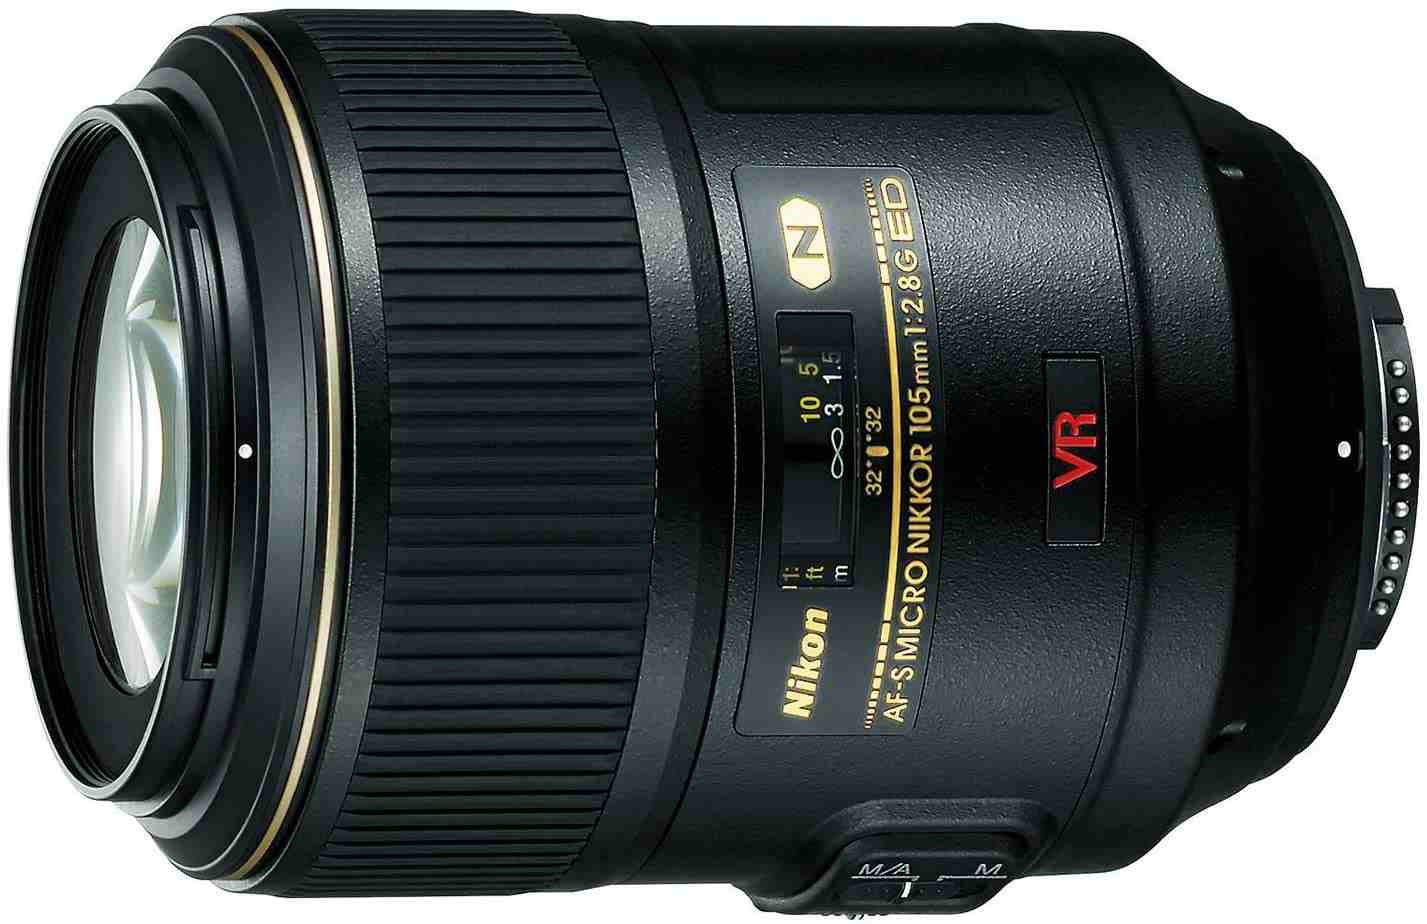 Nikon - best lens for product photography